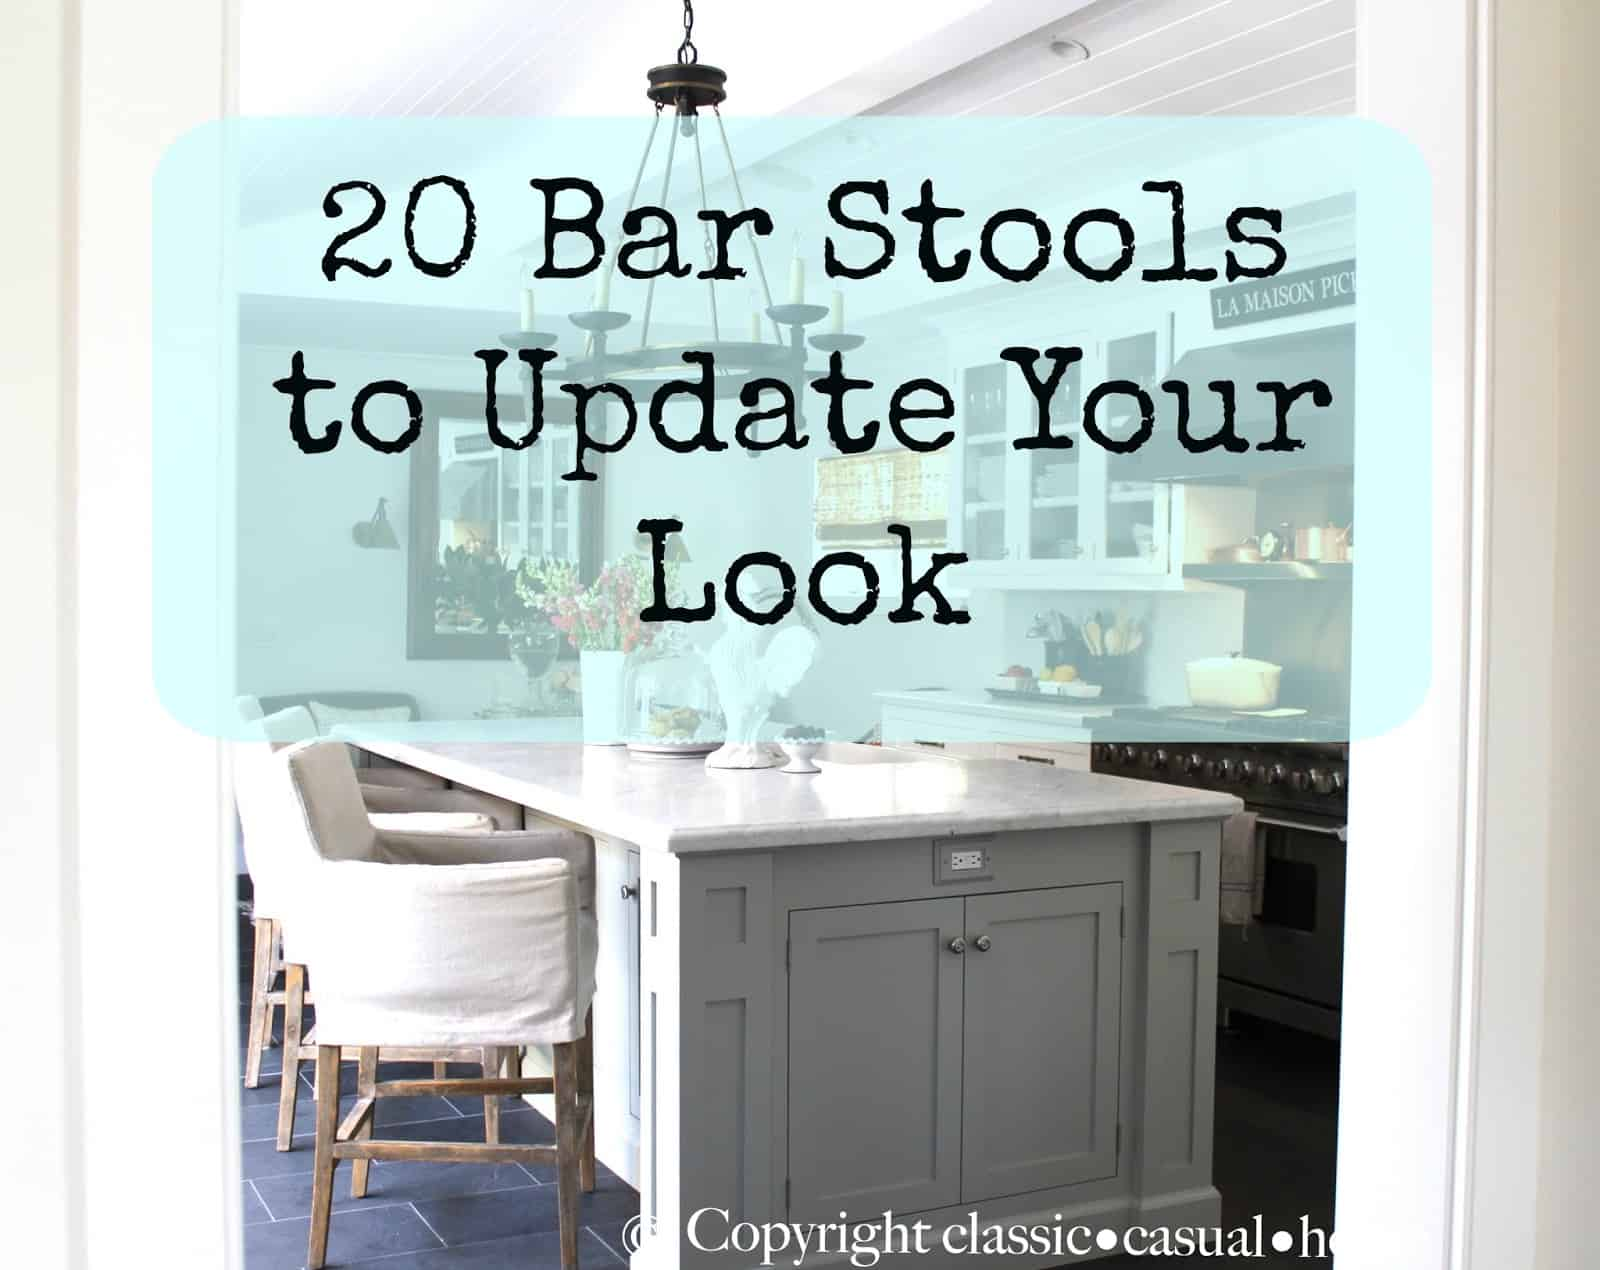 20 Great Bar Stools to Update Your Look - Classic Casual Home